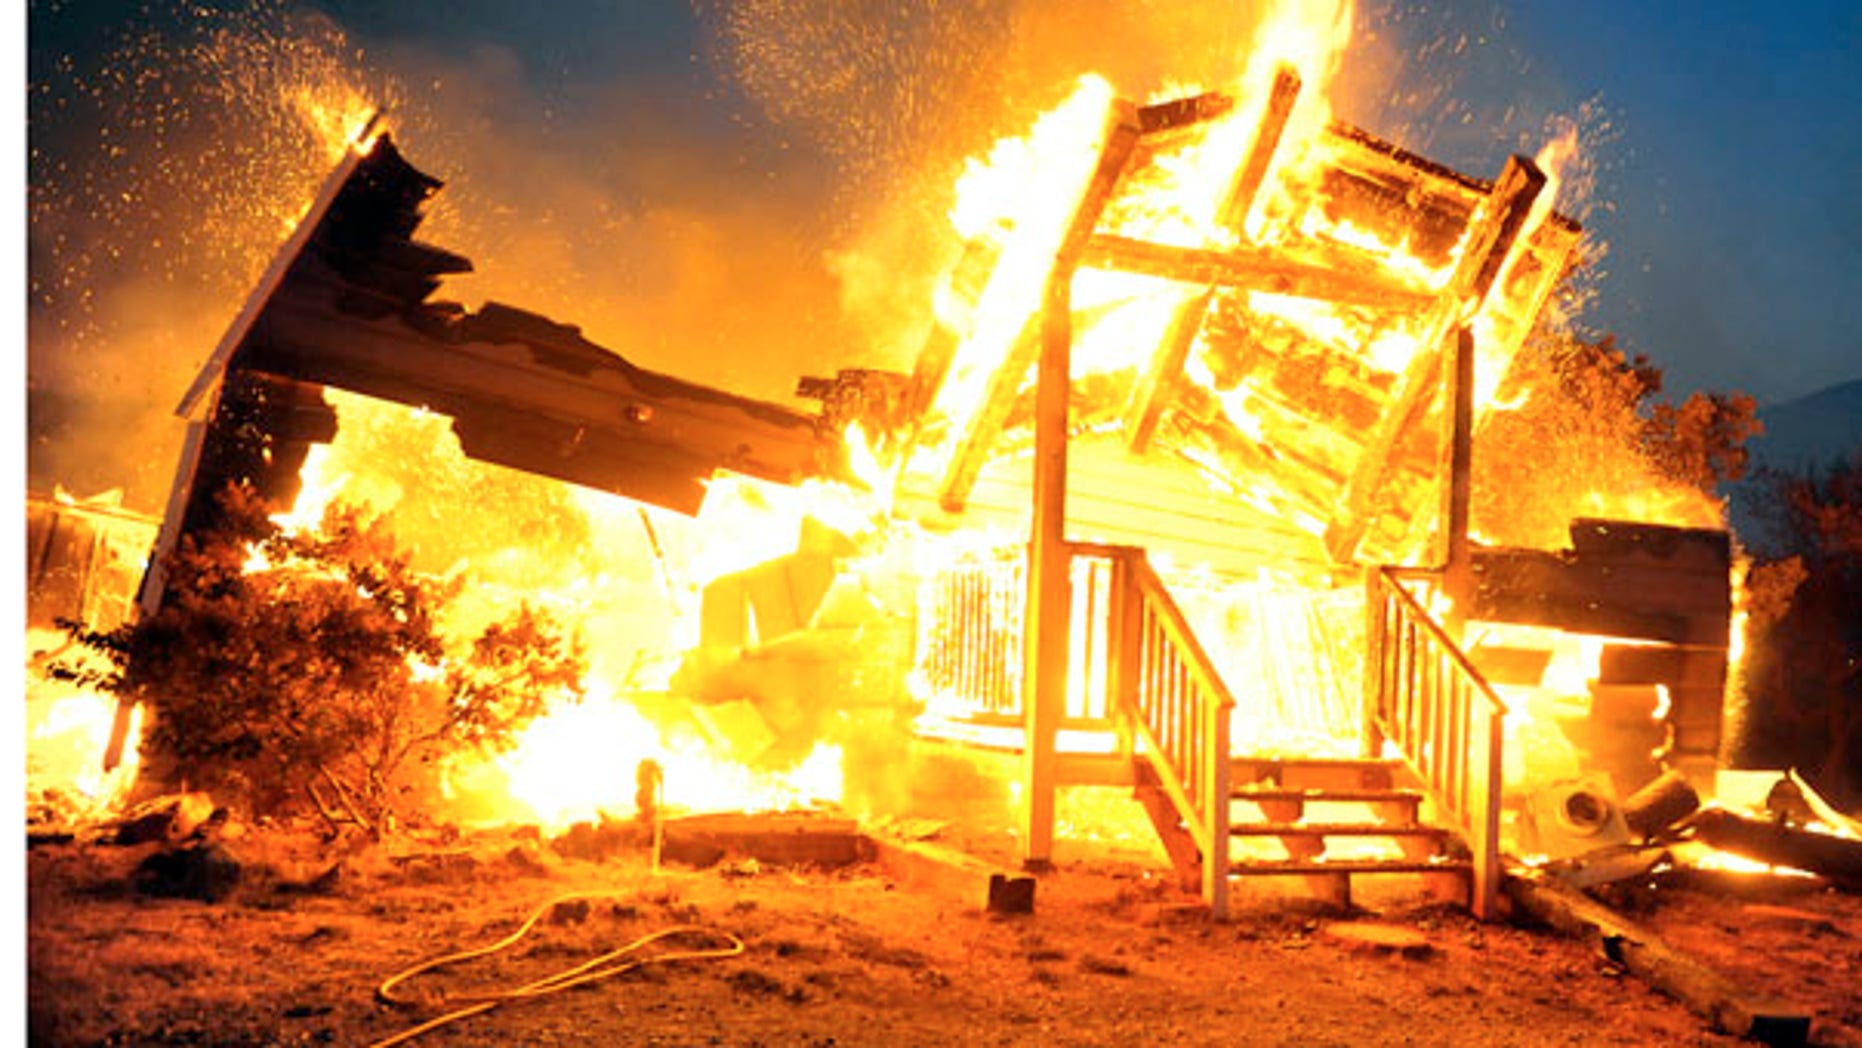 July 27: A house in Tehachapi, Calif., burns as two wildfires erupted and spread quickly in Southern California, destroying dozens of homes and forcing evacuations in remote areas of the state's Kern County.